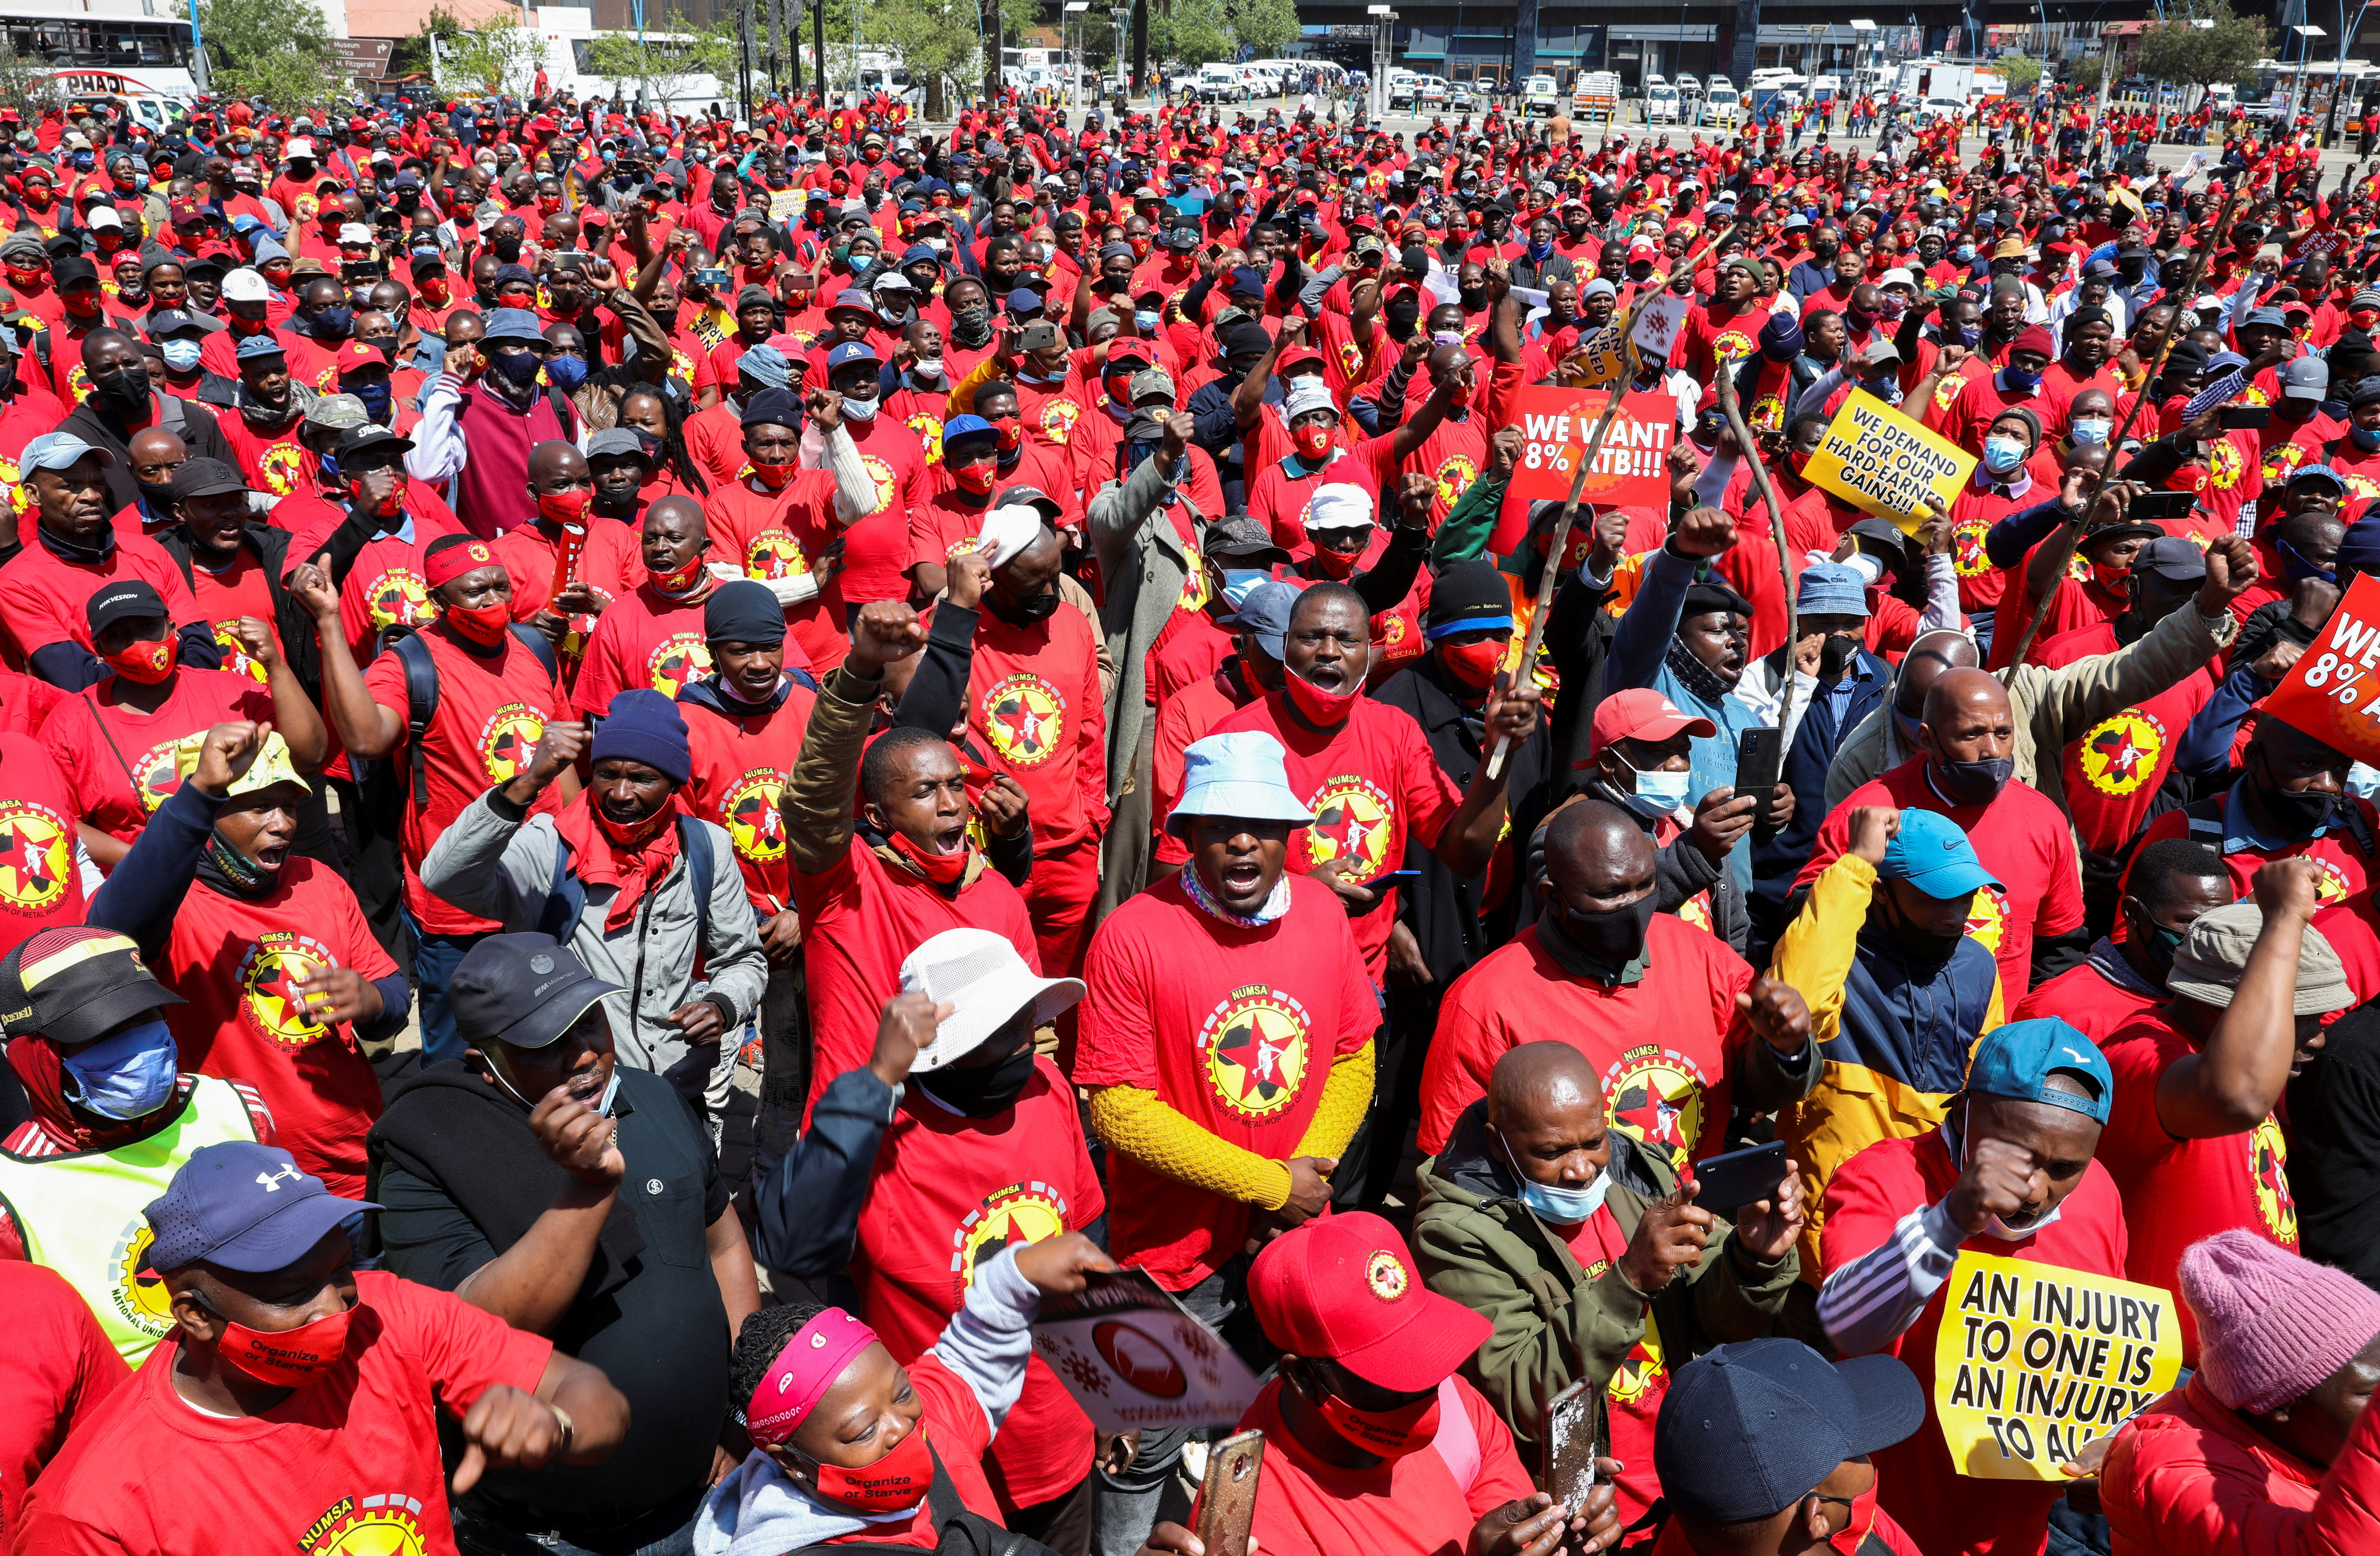 Members of the National Union of Metalworkers of South Africa (NUMSA) hold placards as they gather ahead of an indefinite strike, threatening to choke supplies of parts to make new cars and accessories, in Johannesburg, South Africa, October 5, 2021. REUTERS/Siphiwe Sibeko